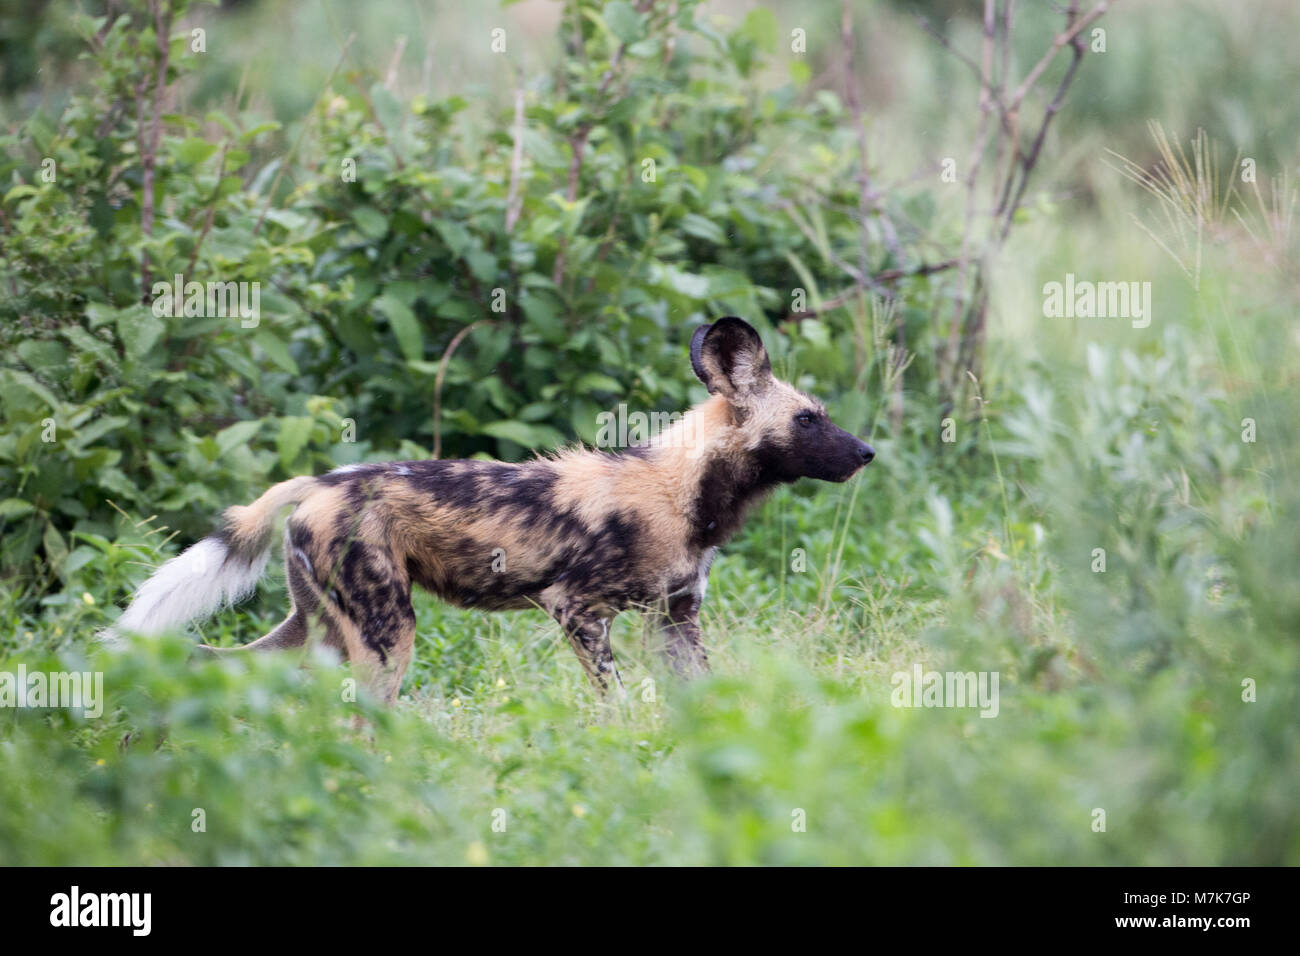 African Hunting Dog, African Wild Dog, or Painted Dogs (Lycaon pictus). One of a pack positioning themselves ready - Stock Image